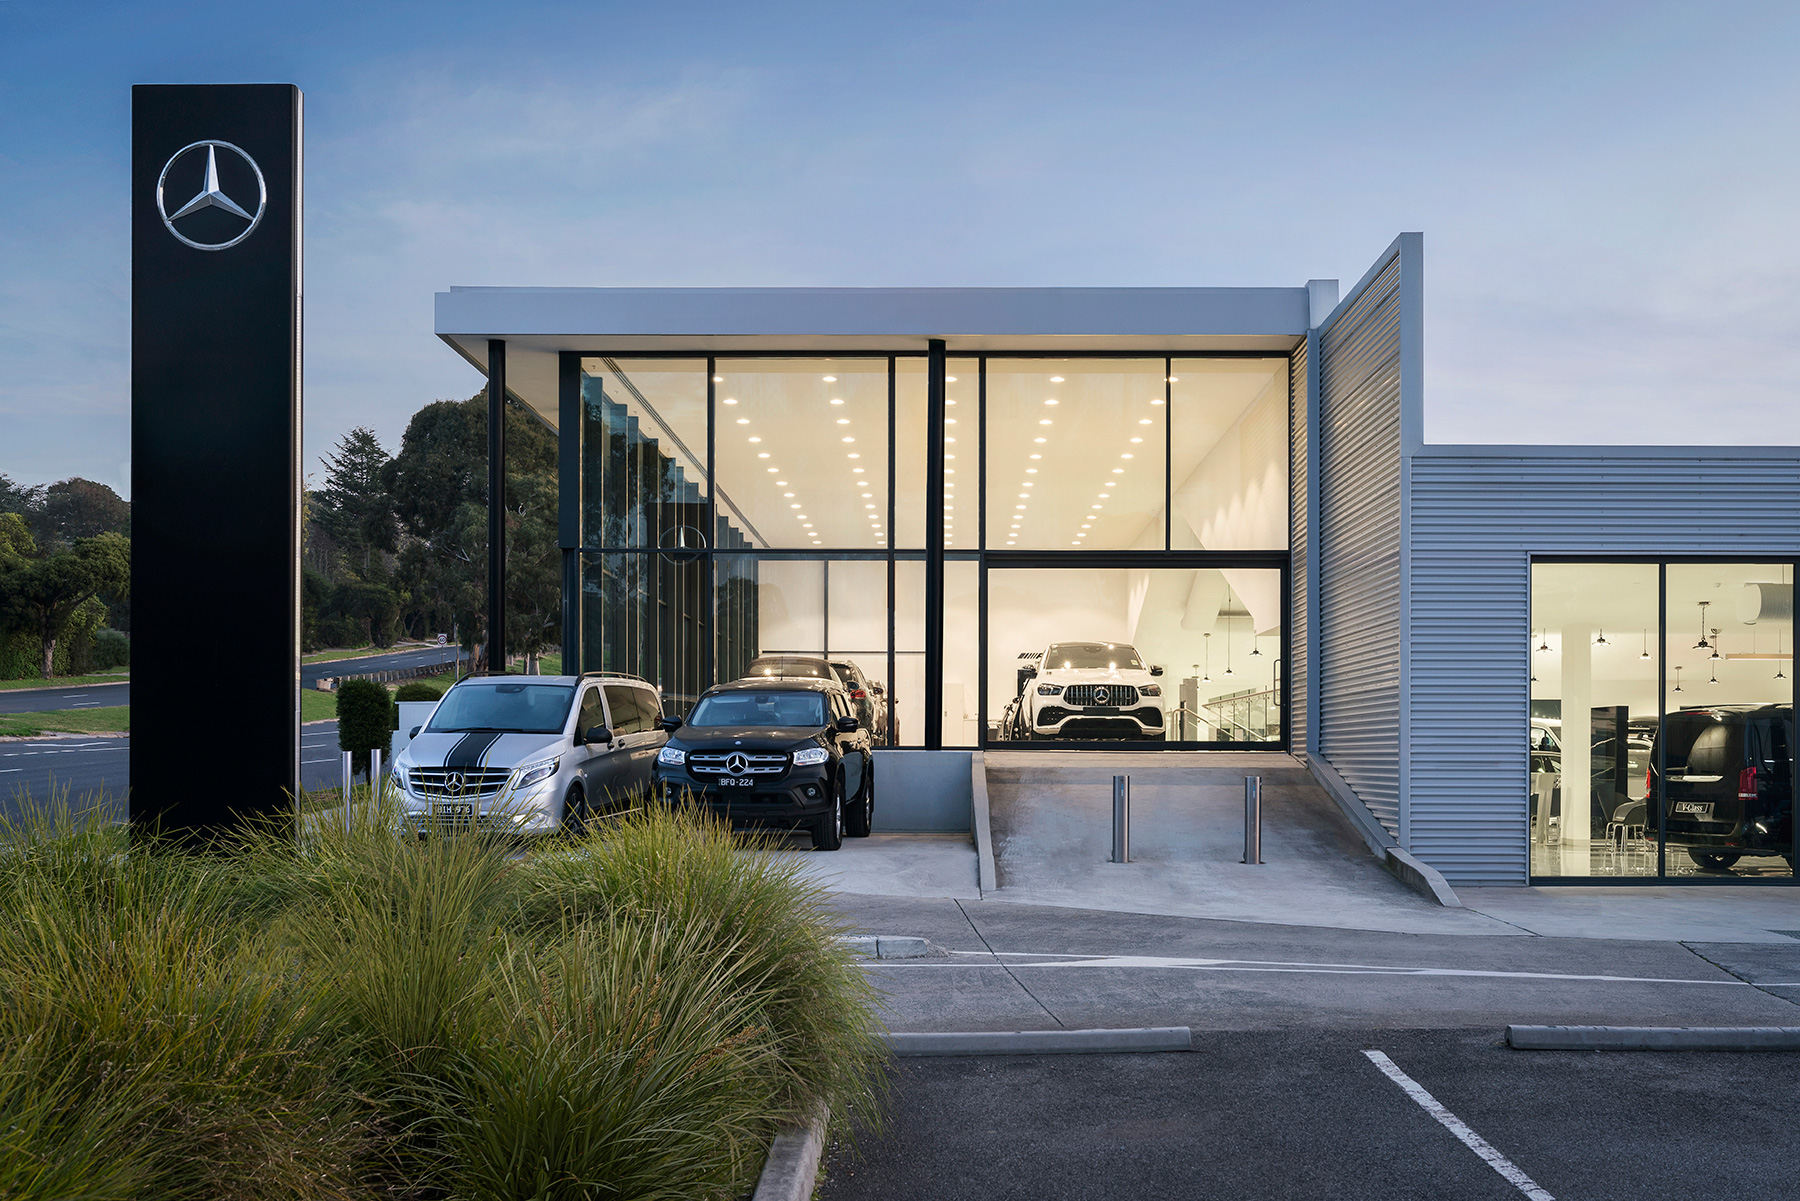 c. kairouz architects commercial architecture design for car dealership exterior building side view image